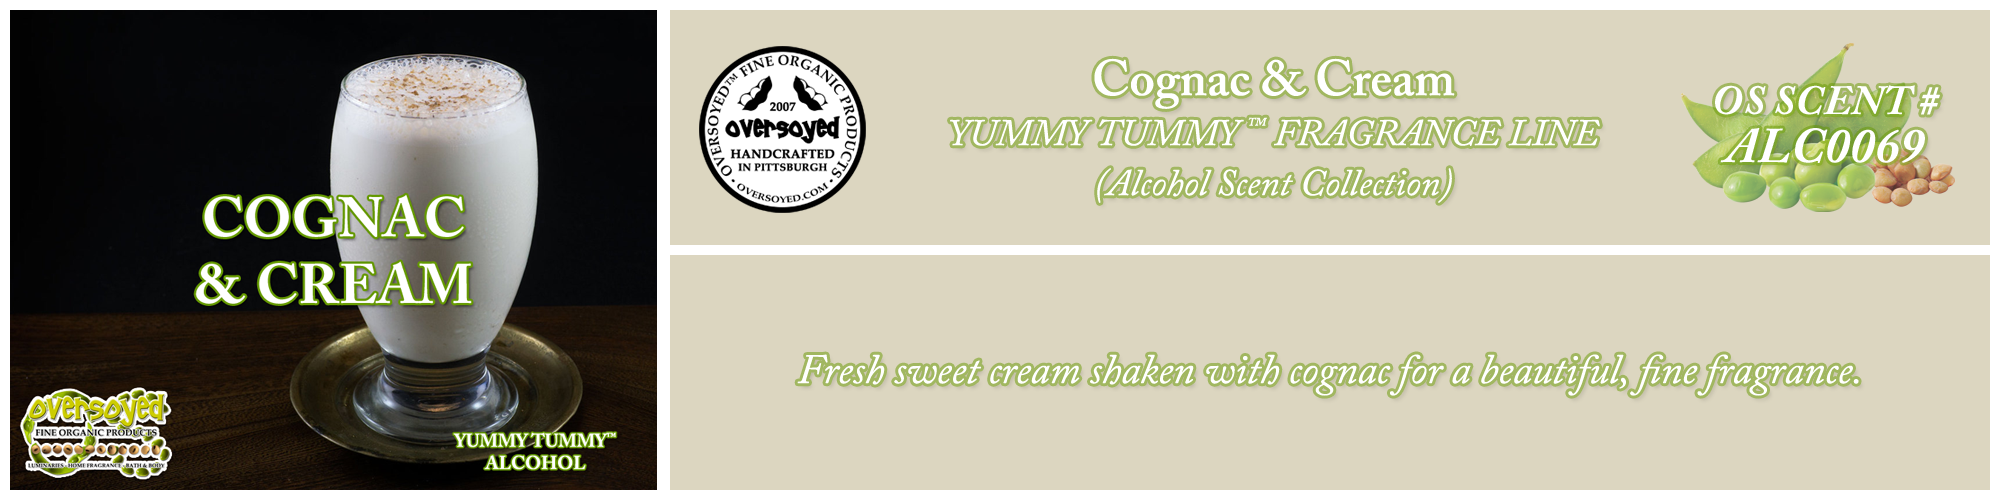 Cognac & Cream Handcrafted Products Collection